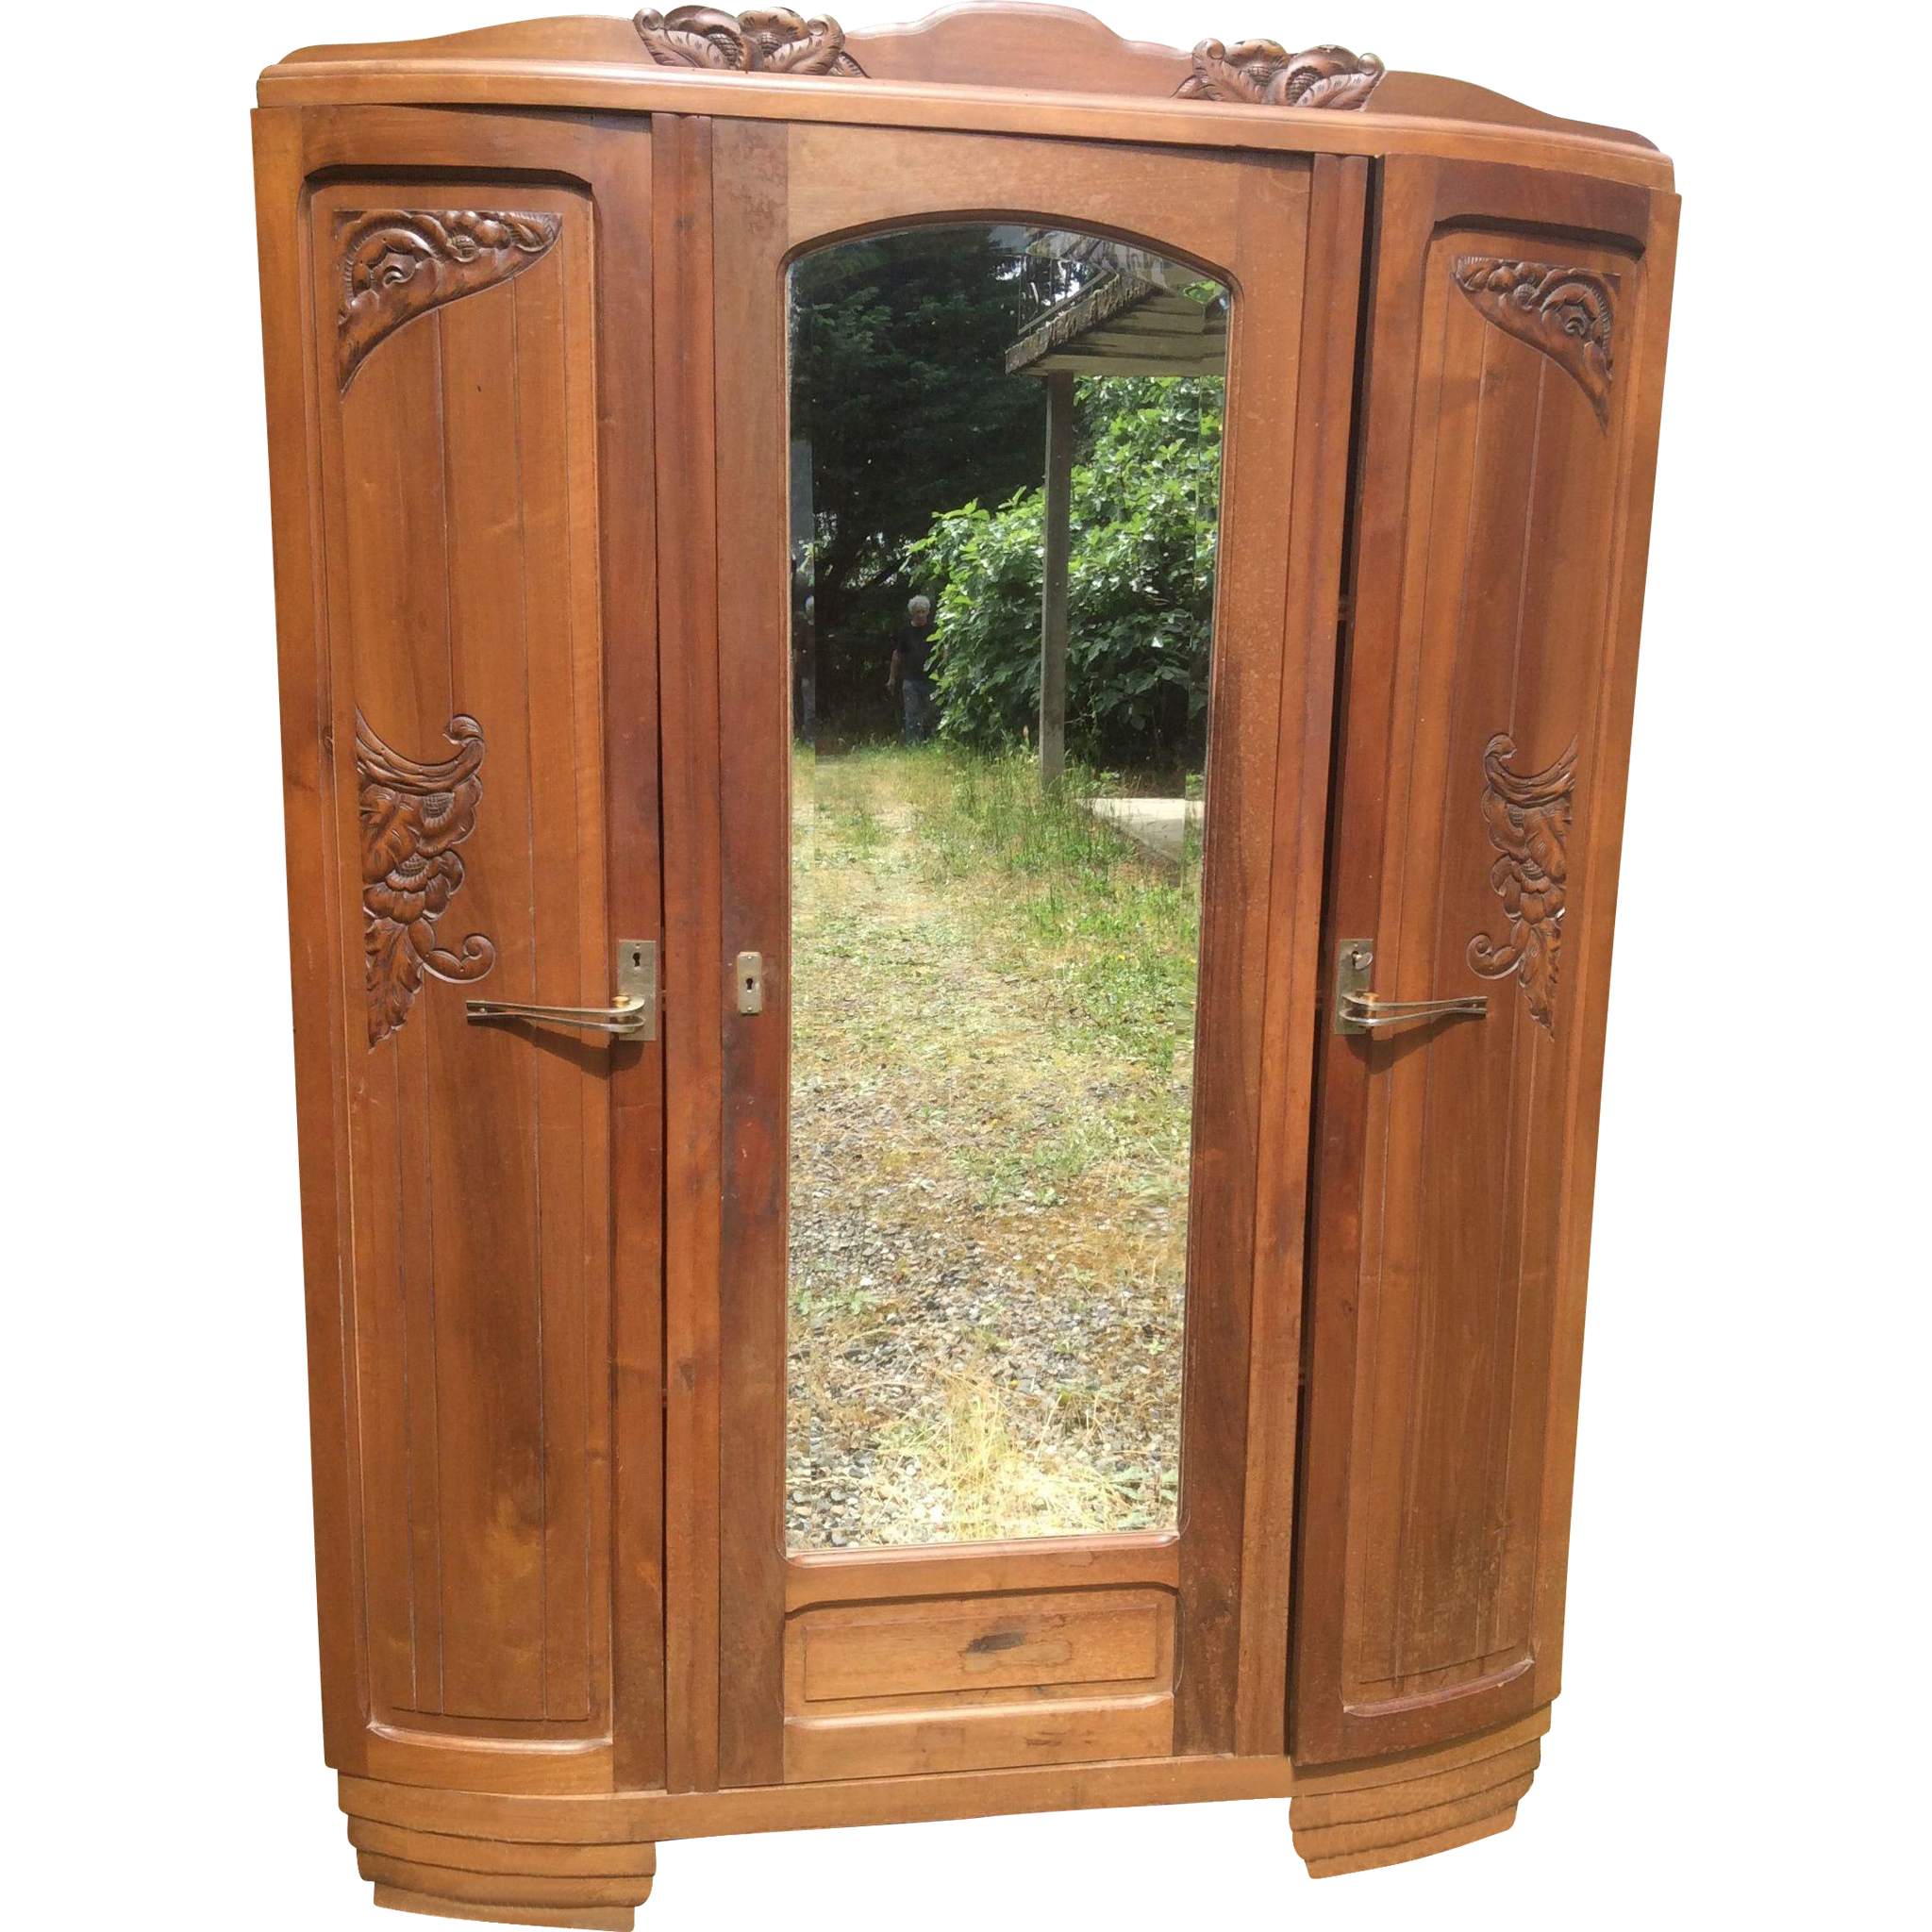 art armoire 28 images french art nouveau armoire from luxuryfrenchcollection on art nouveau. Black Bedroom Furniture Sets. Home Design Ideas